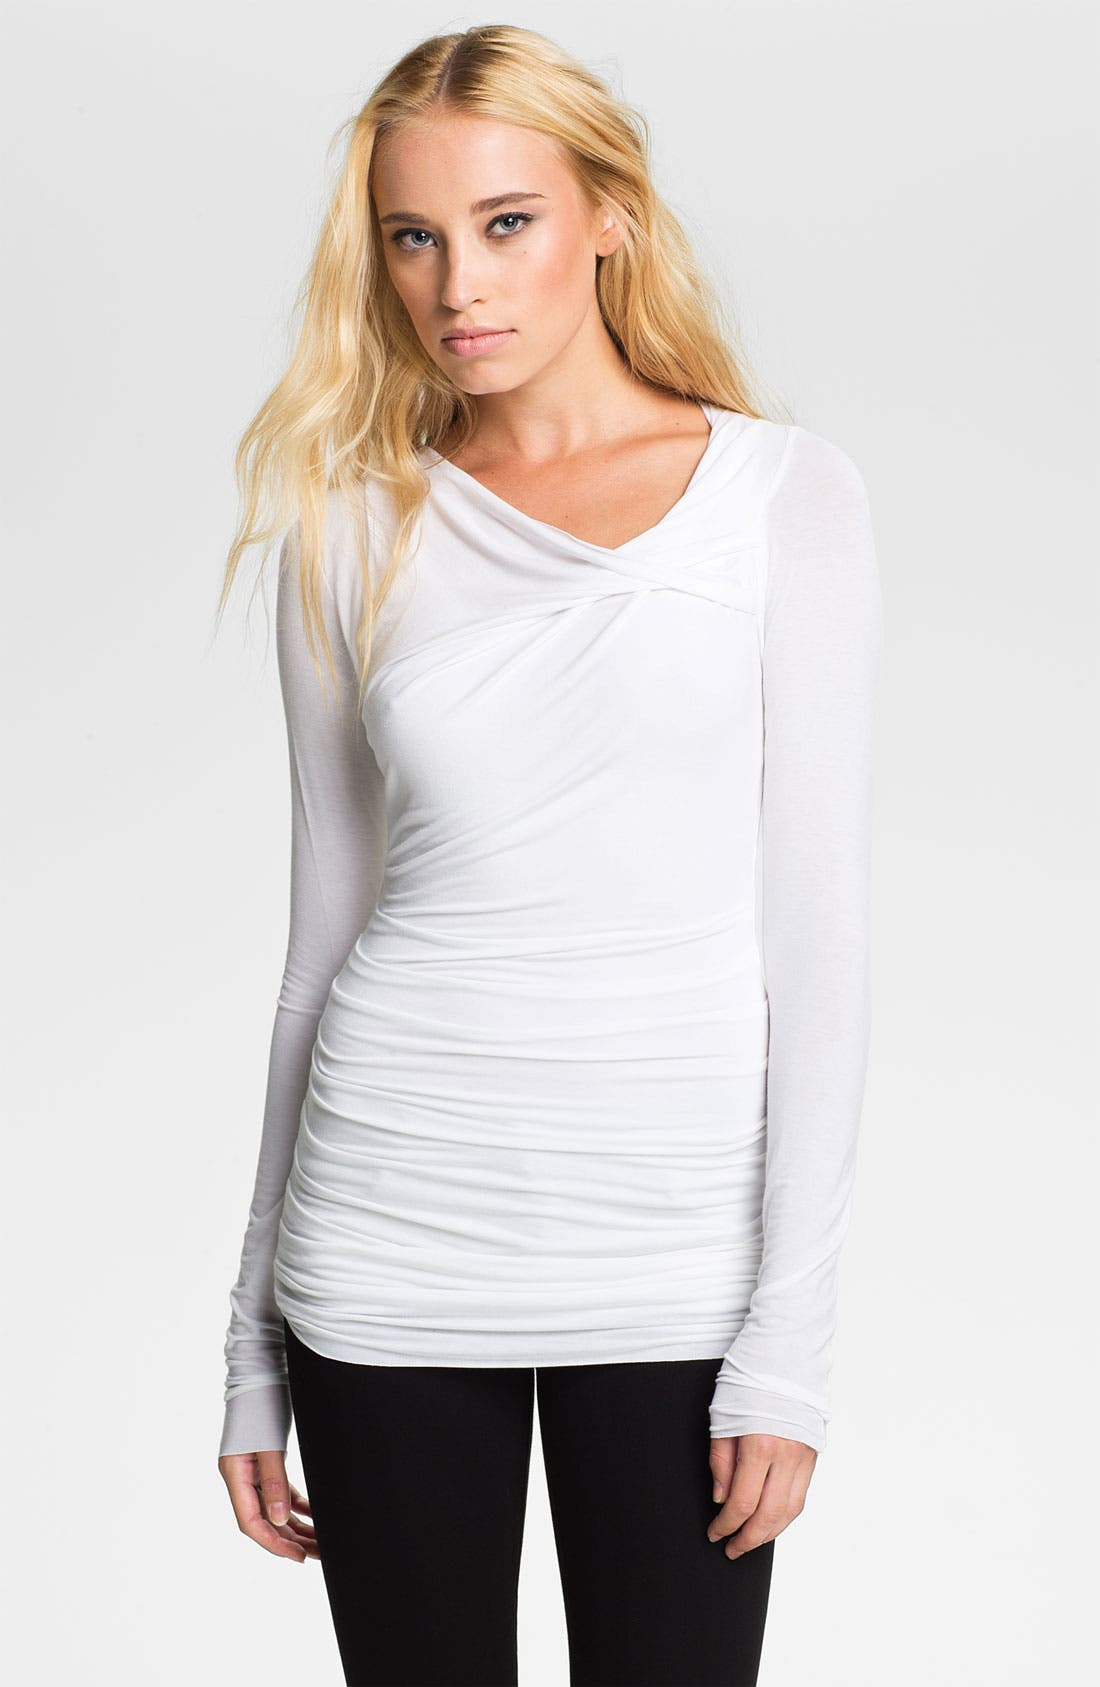 Alternate Image 1 Selected - Bailey 44 'Tie Breaker' Ruched Twist Neck Top